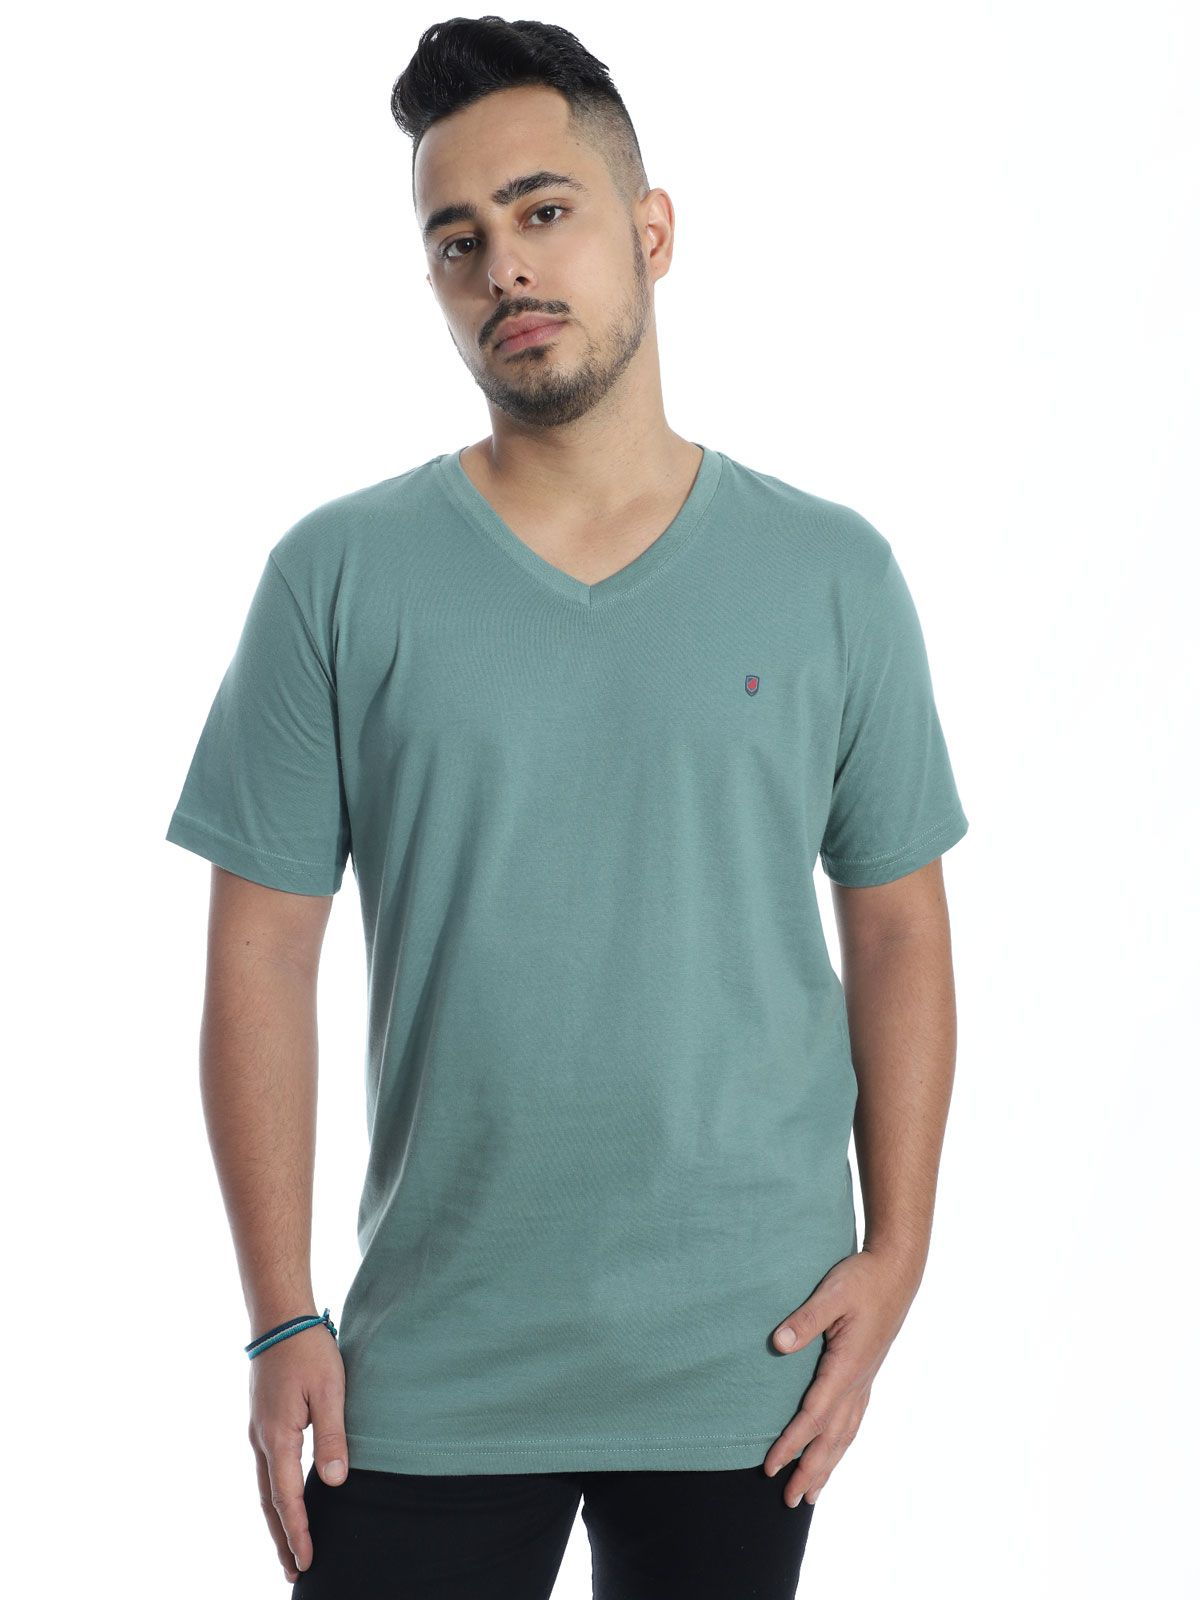 Camiseta Anistia Básica Decote V. Chest Concreto